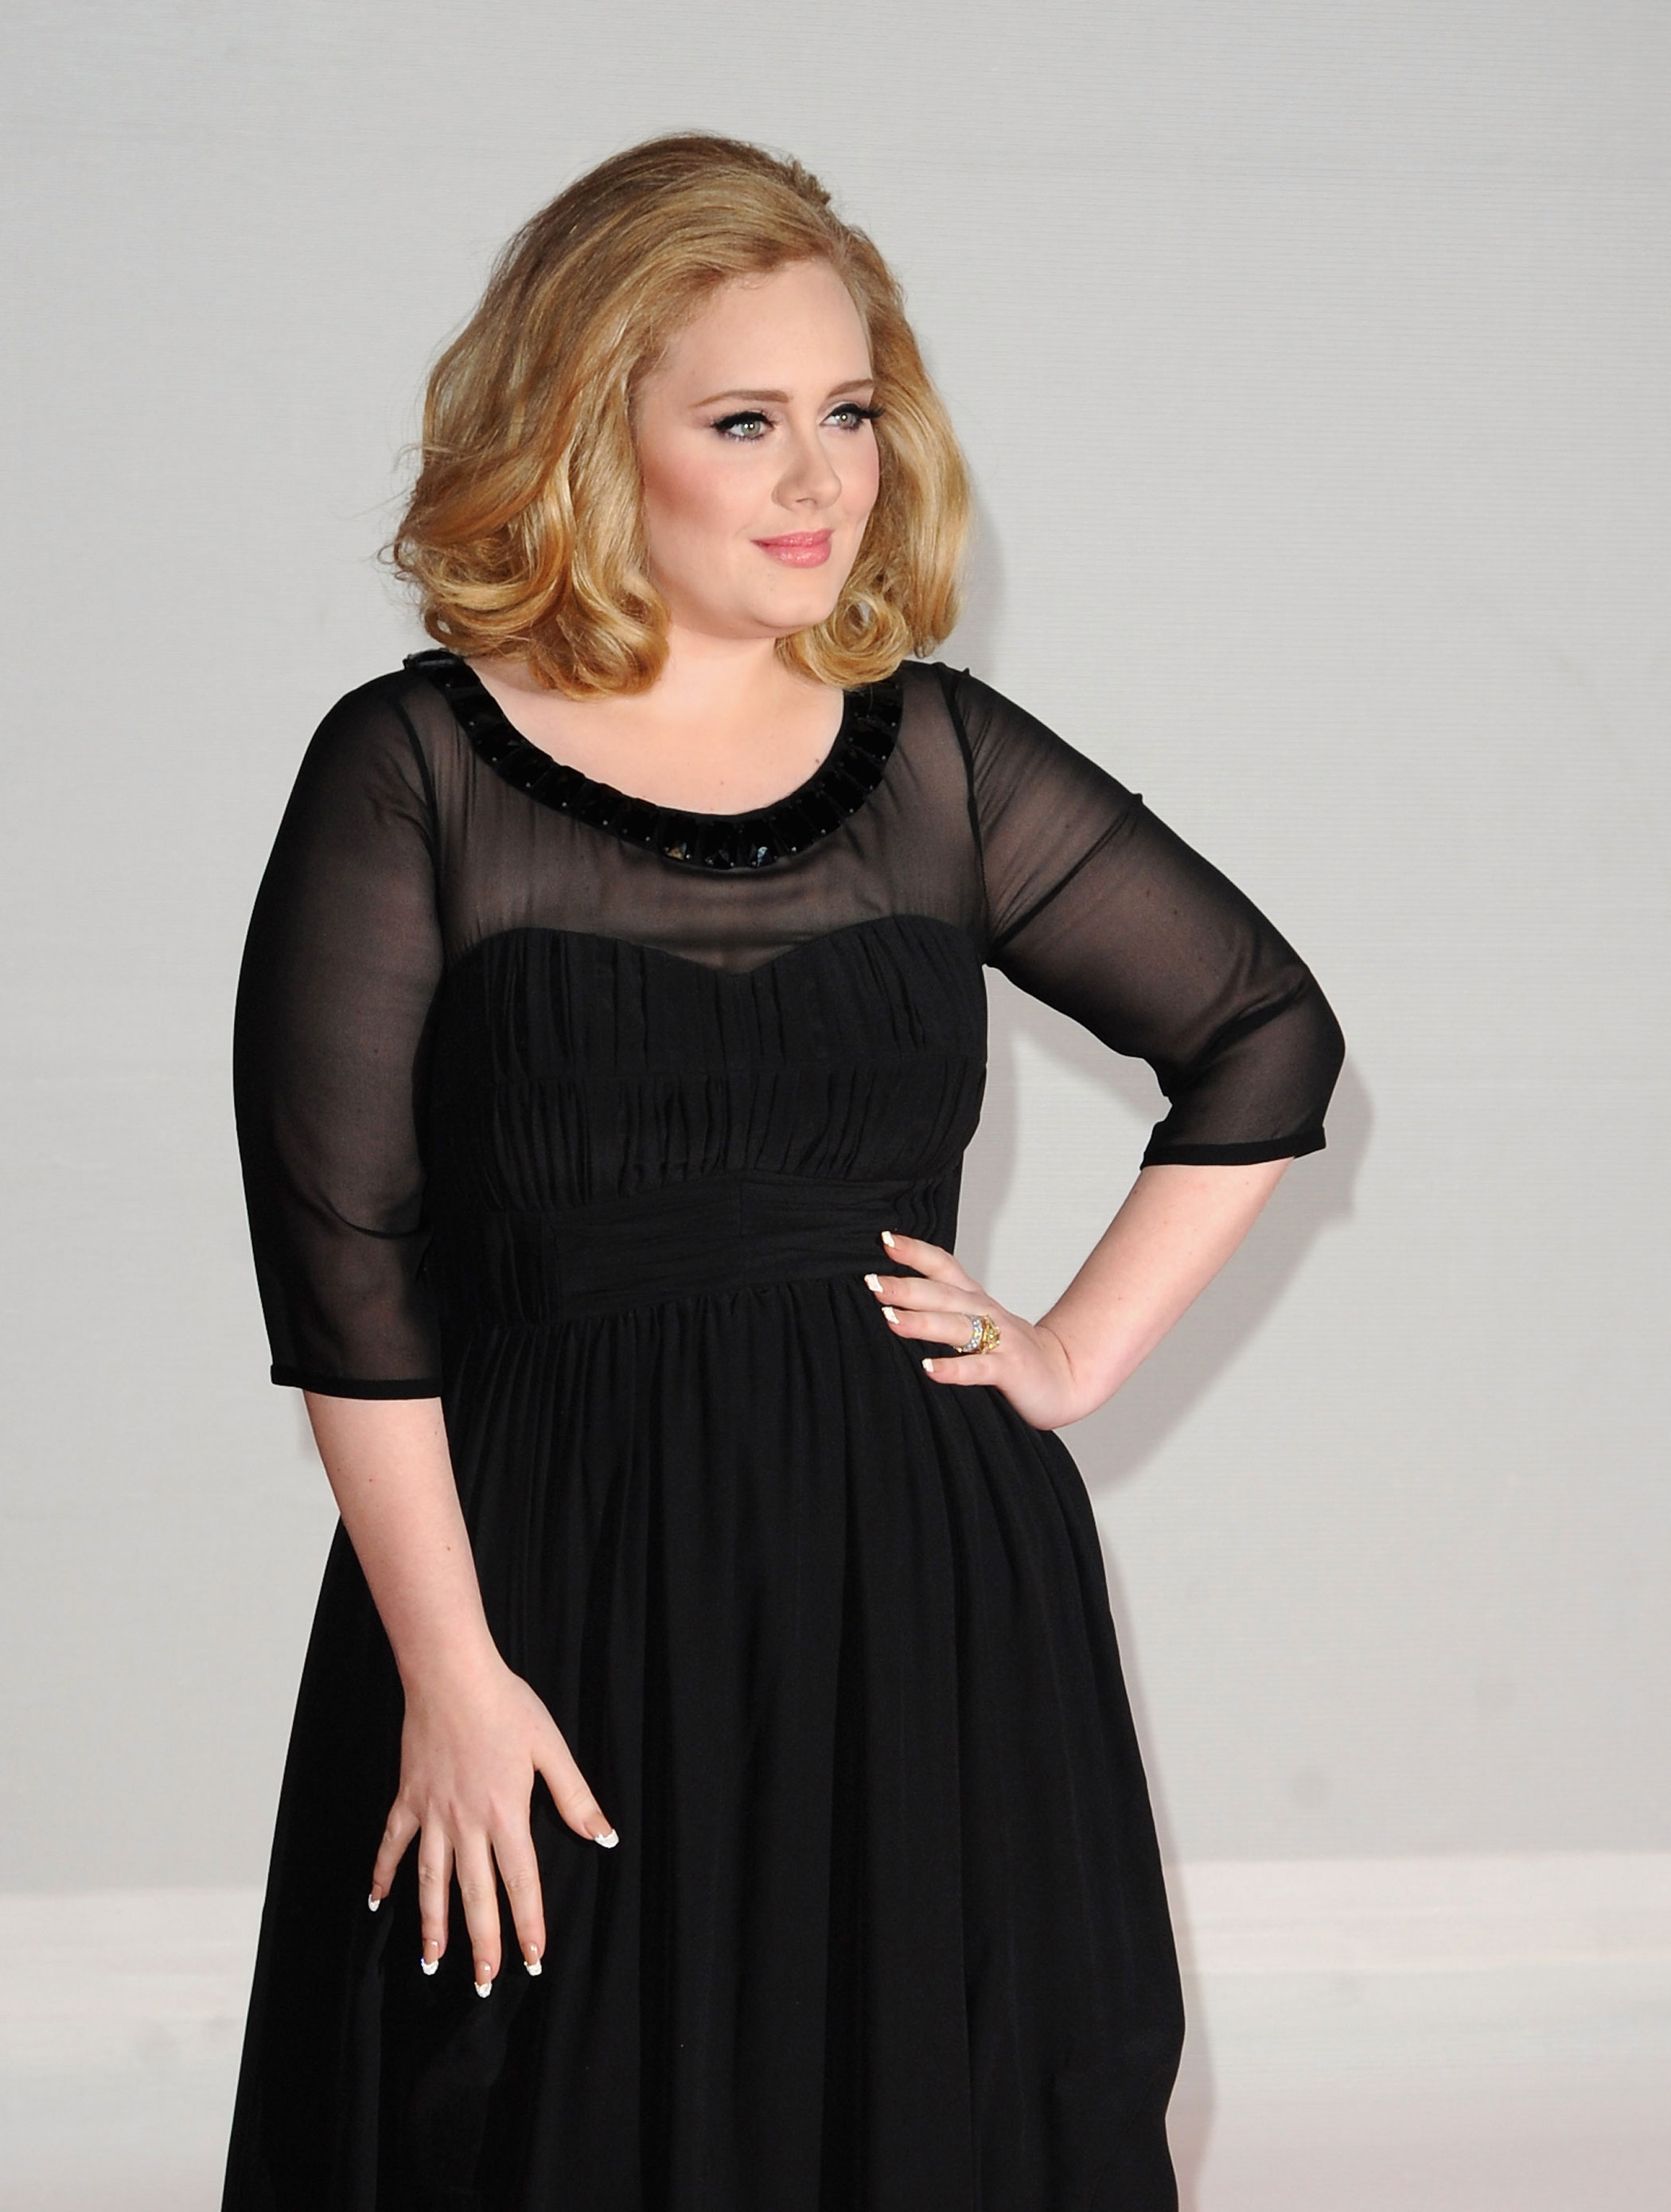 Adele at The BRIT Awards in London on Feb. 21, 2012.